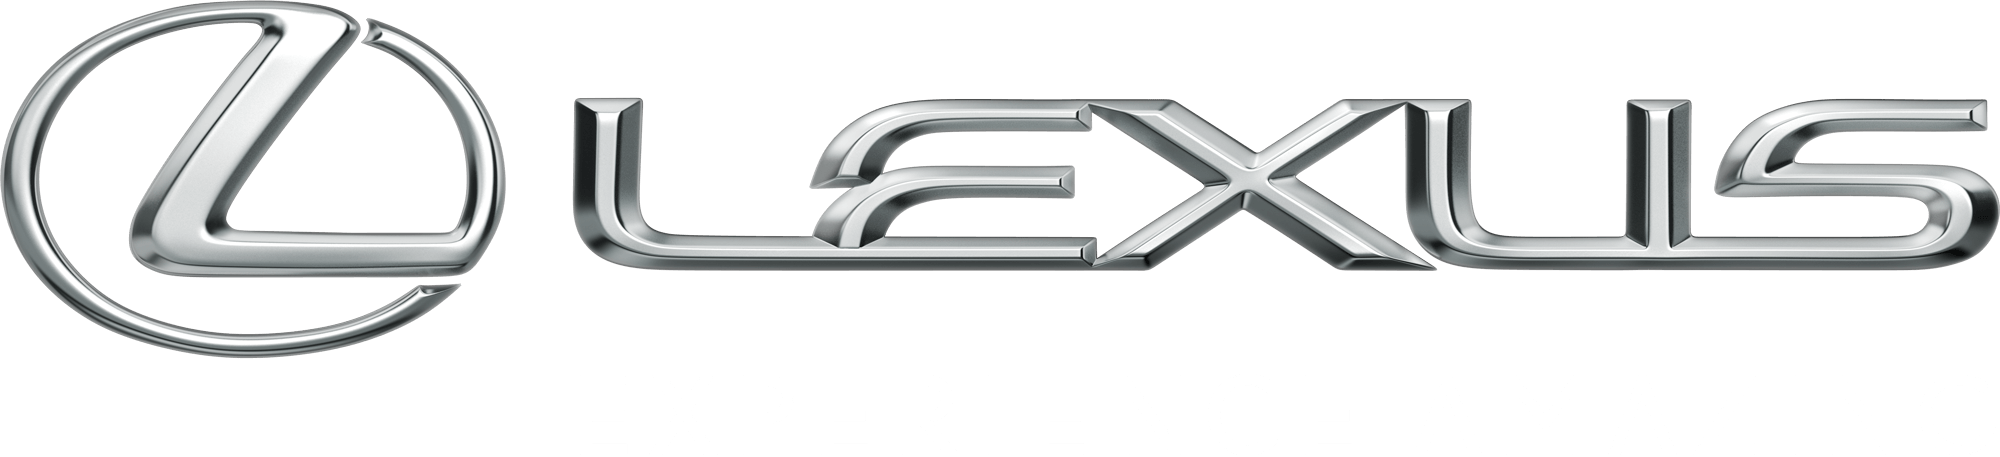 Lexus Logo - Luxury and Hybrid Cars | Lexus UK